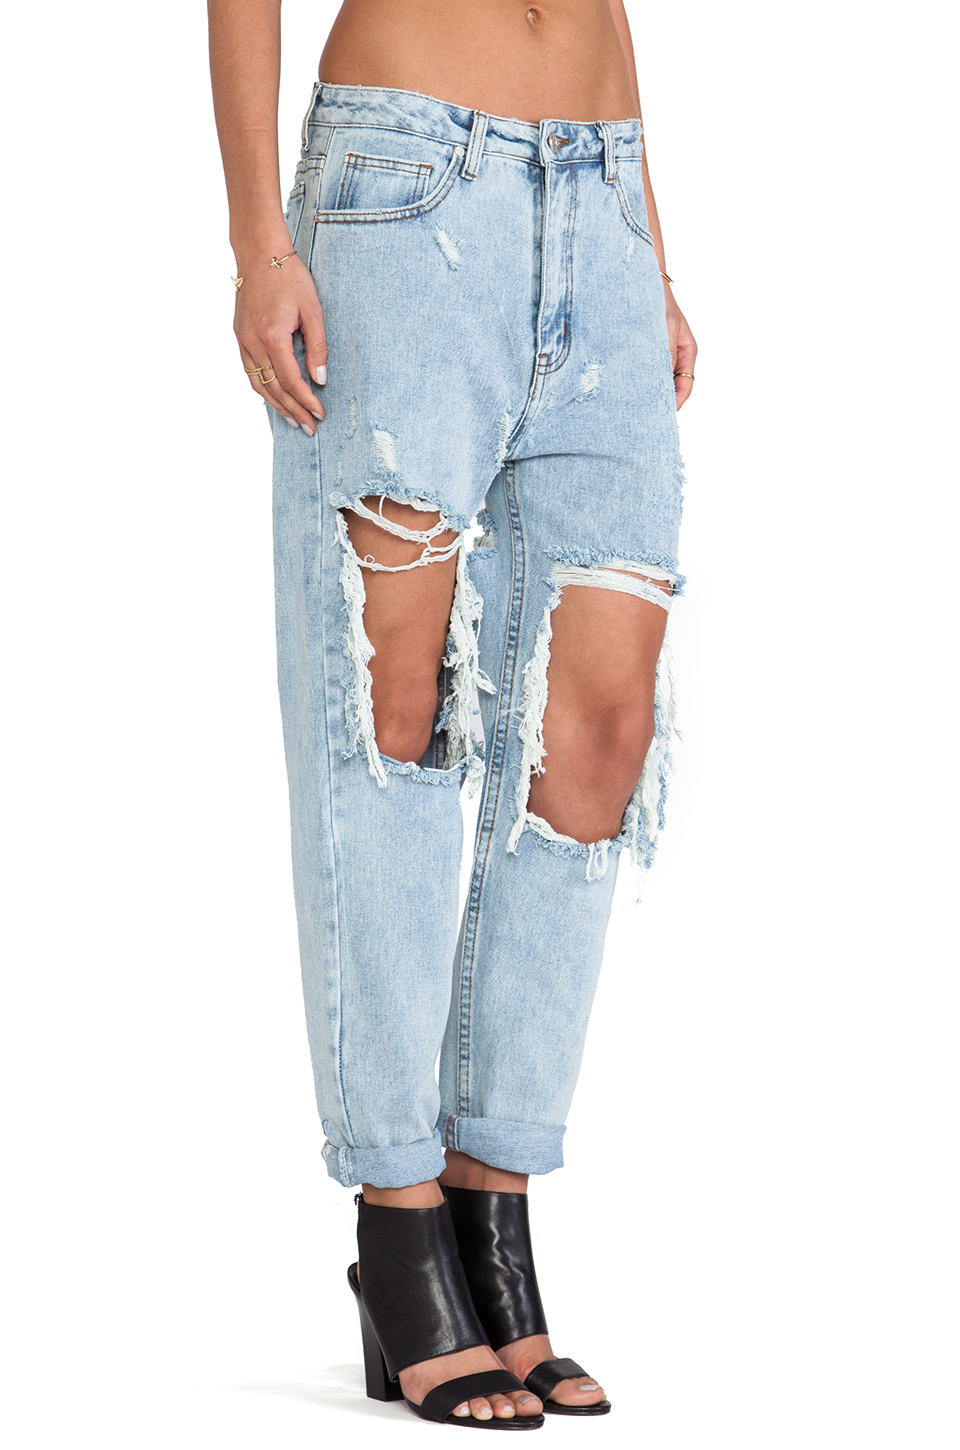 UNIF Twerk Jeans in Denim | REVOLVE